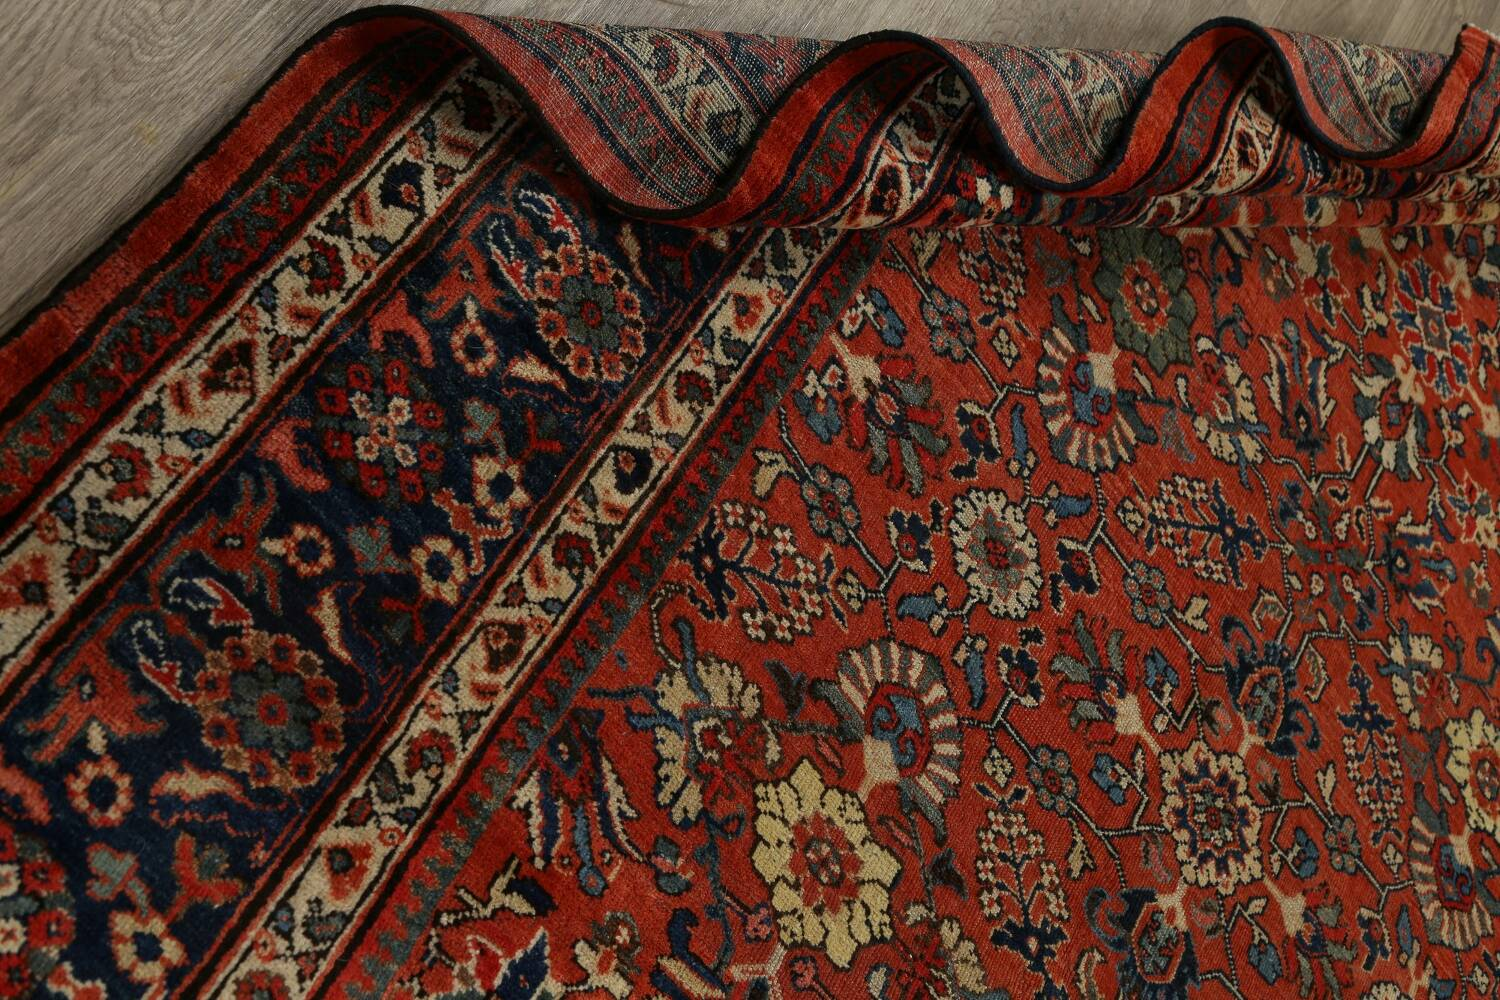 Pre-1900 Antique Vegetable Dye Sultanabad Persian Area Rug 10x14 image 19